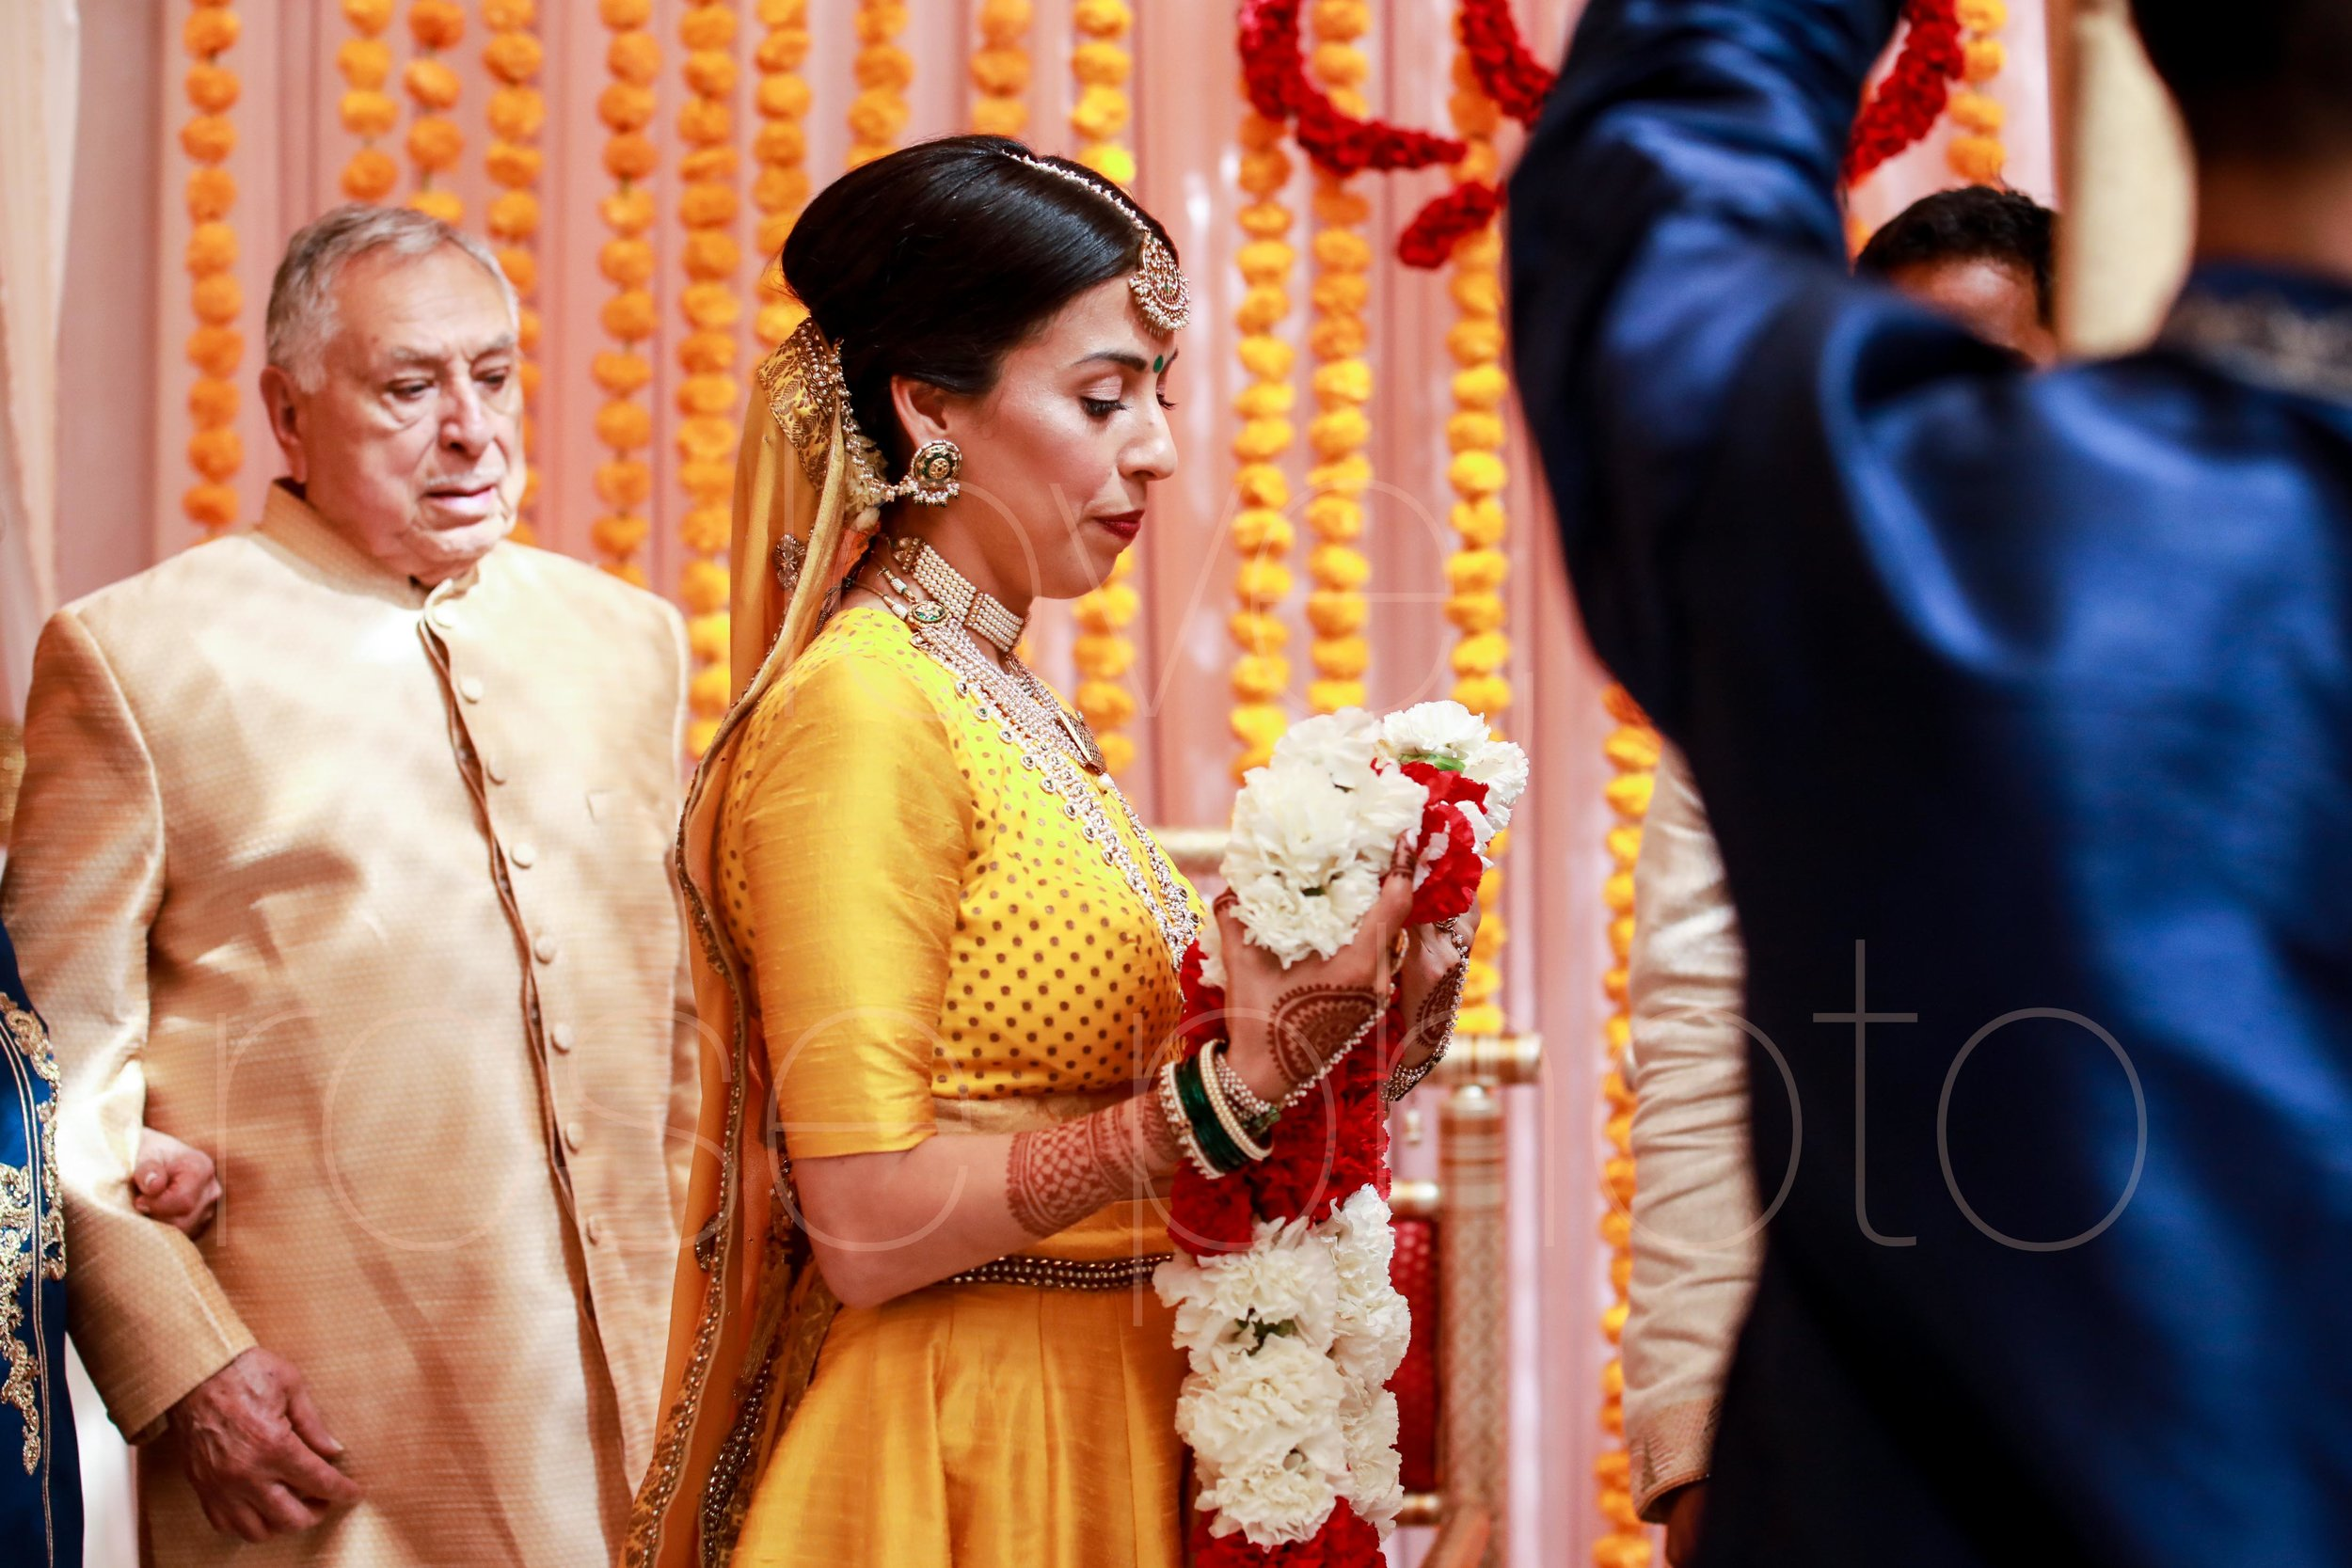 best chicago indian wedding photographer rose photo video collective-76.jpg